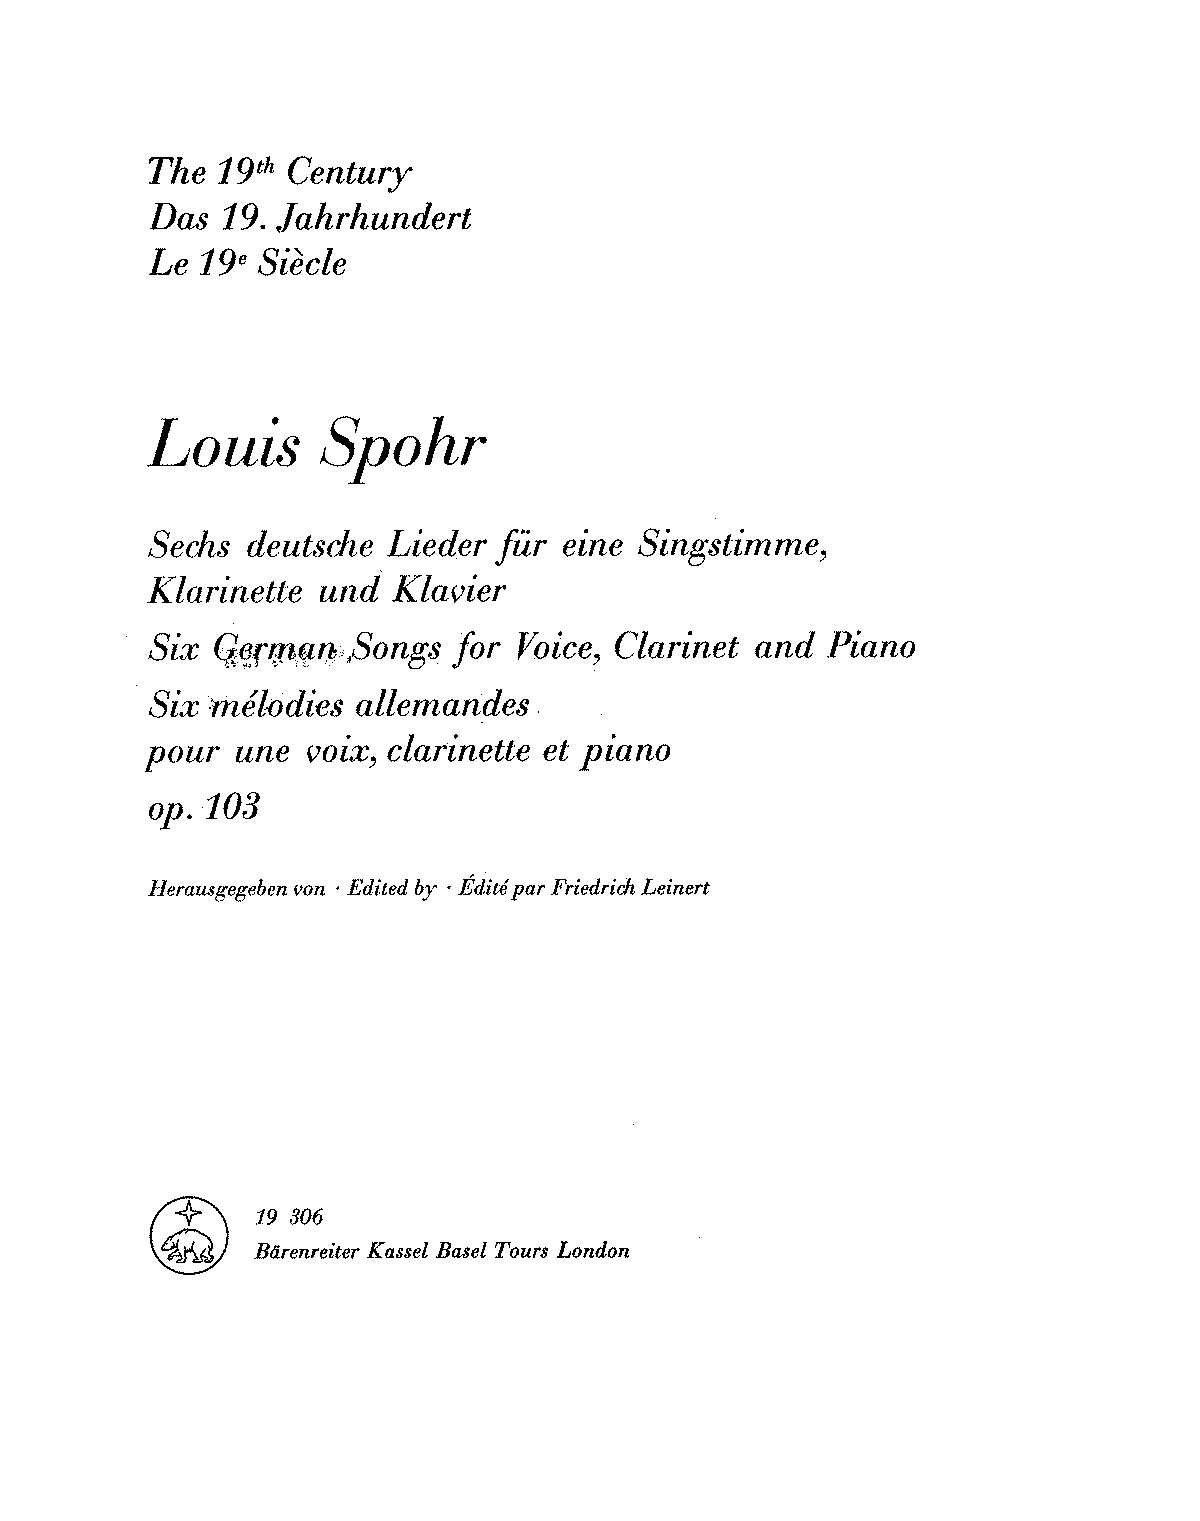 PMLP314492-Spohr Six German Songs for Voice, Clarinet, and Piano Op103.pdf